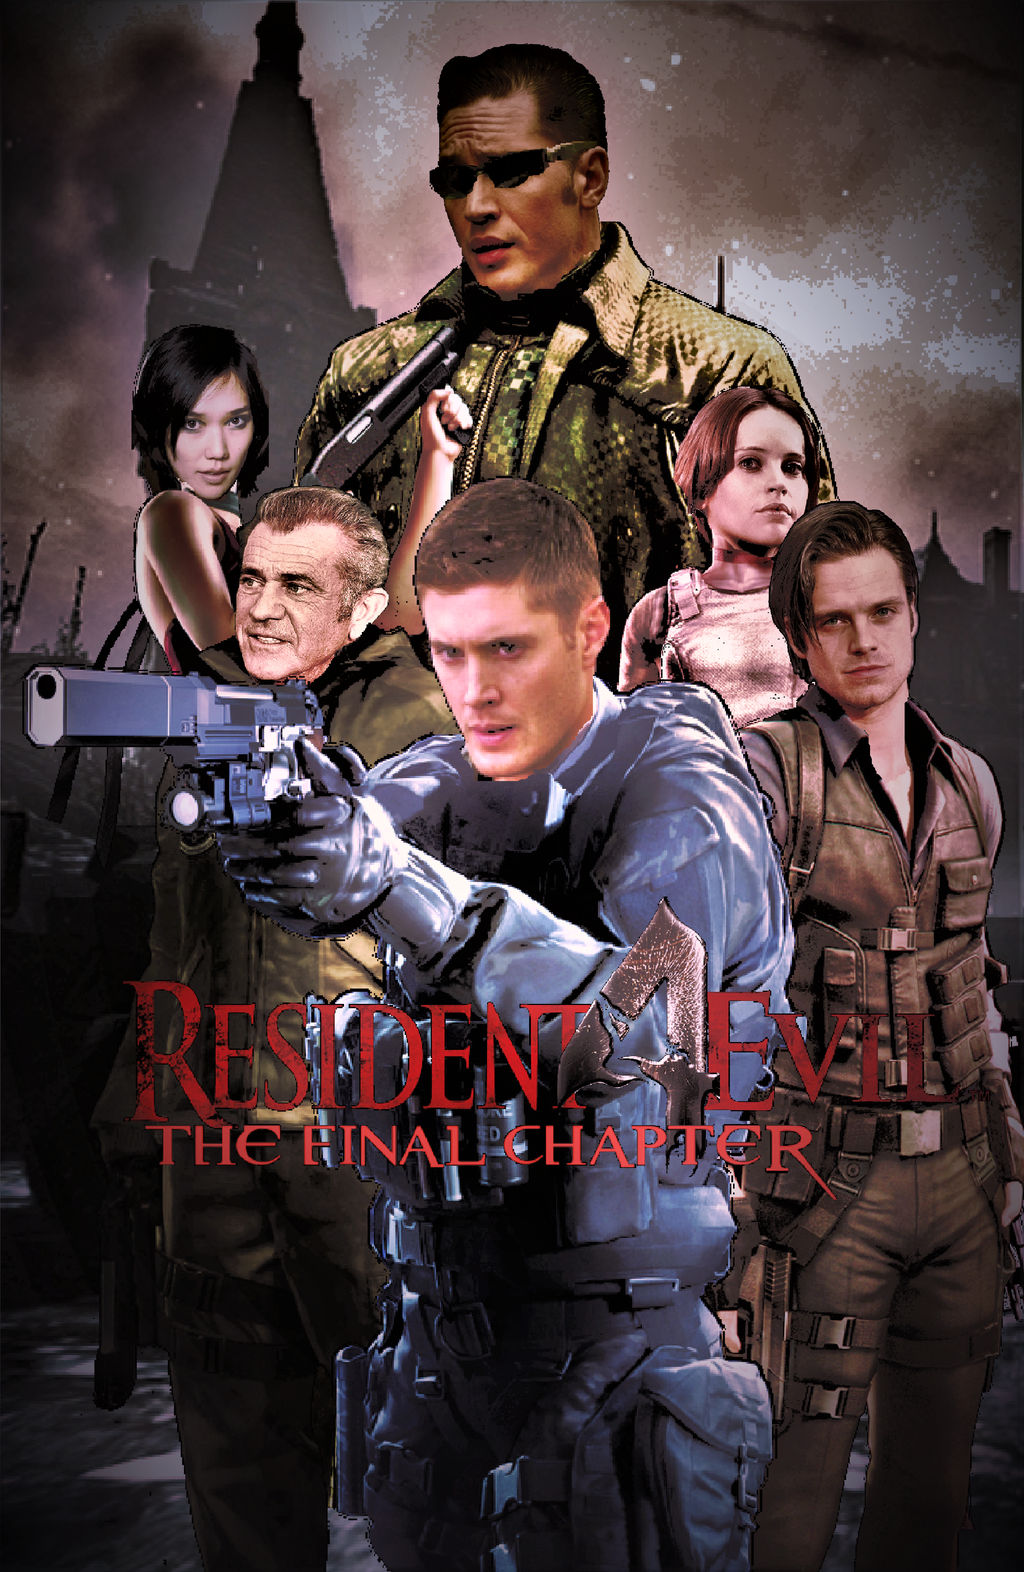 Resident Evil 4 The Final Chapter Poster By Nicolascage49 On